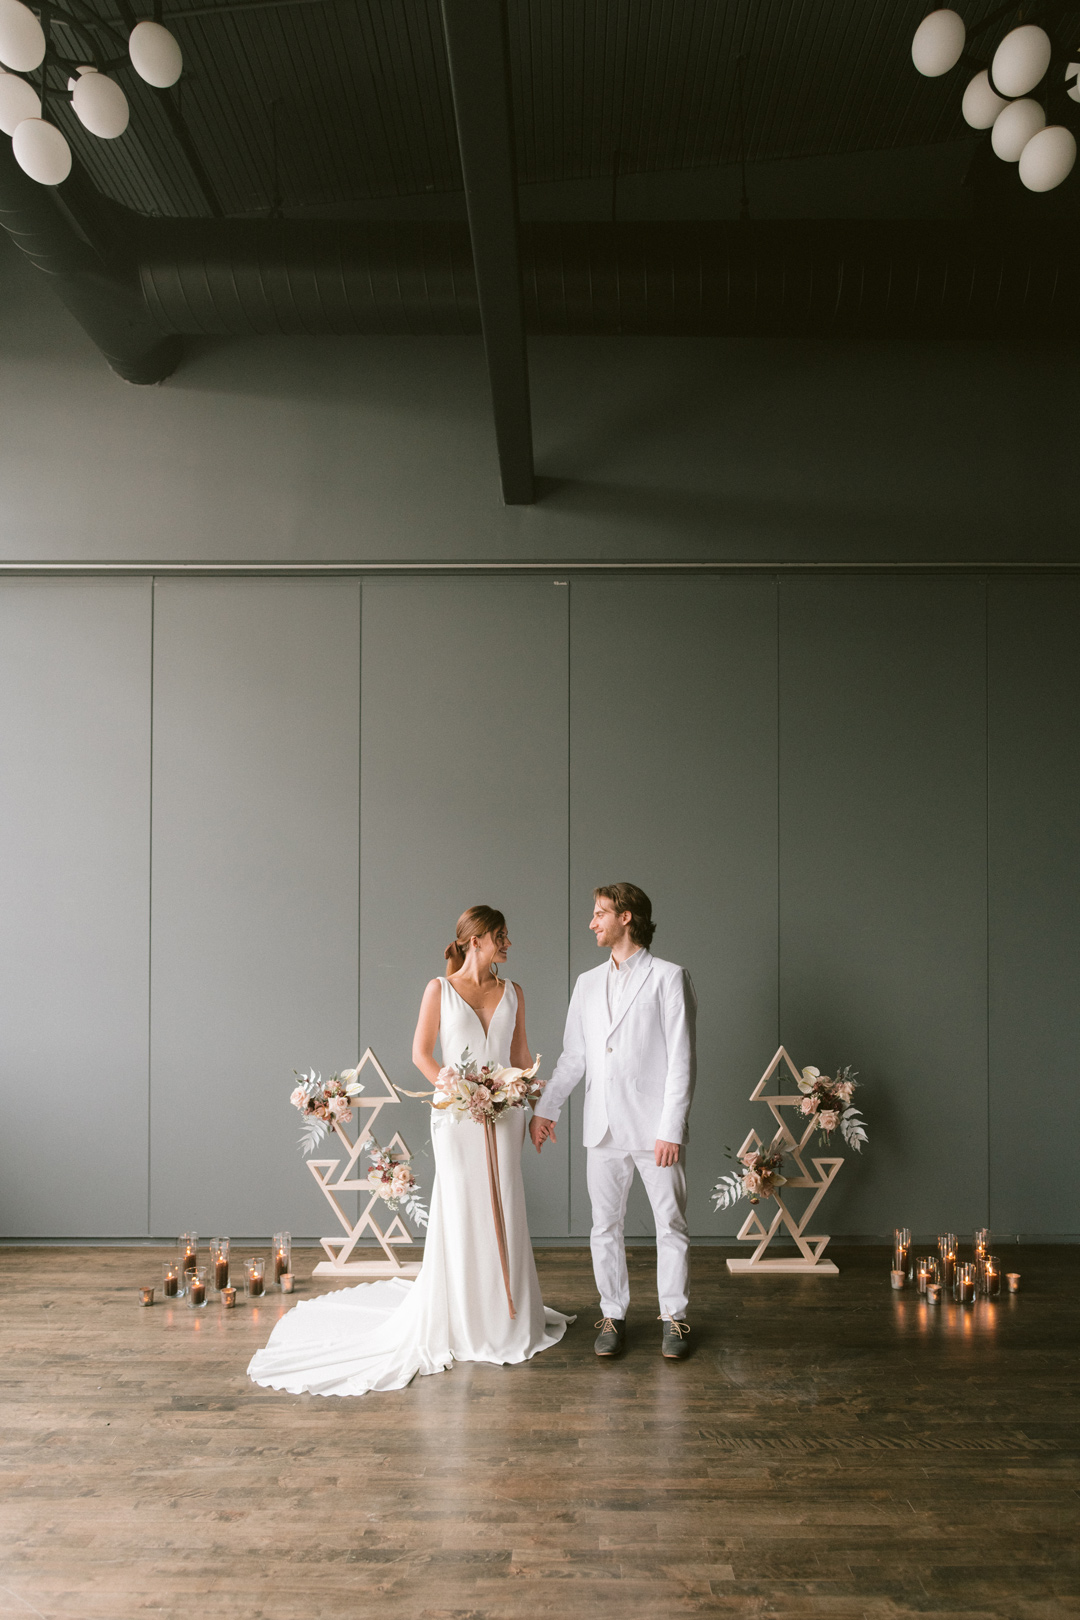 Wedding Couple looking at each other in a studio space